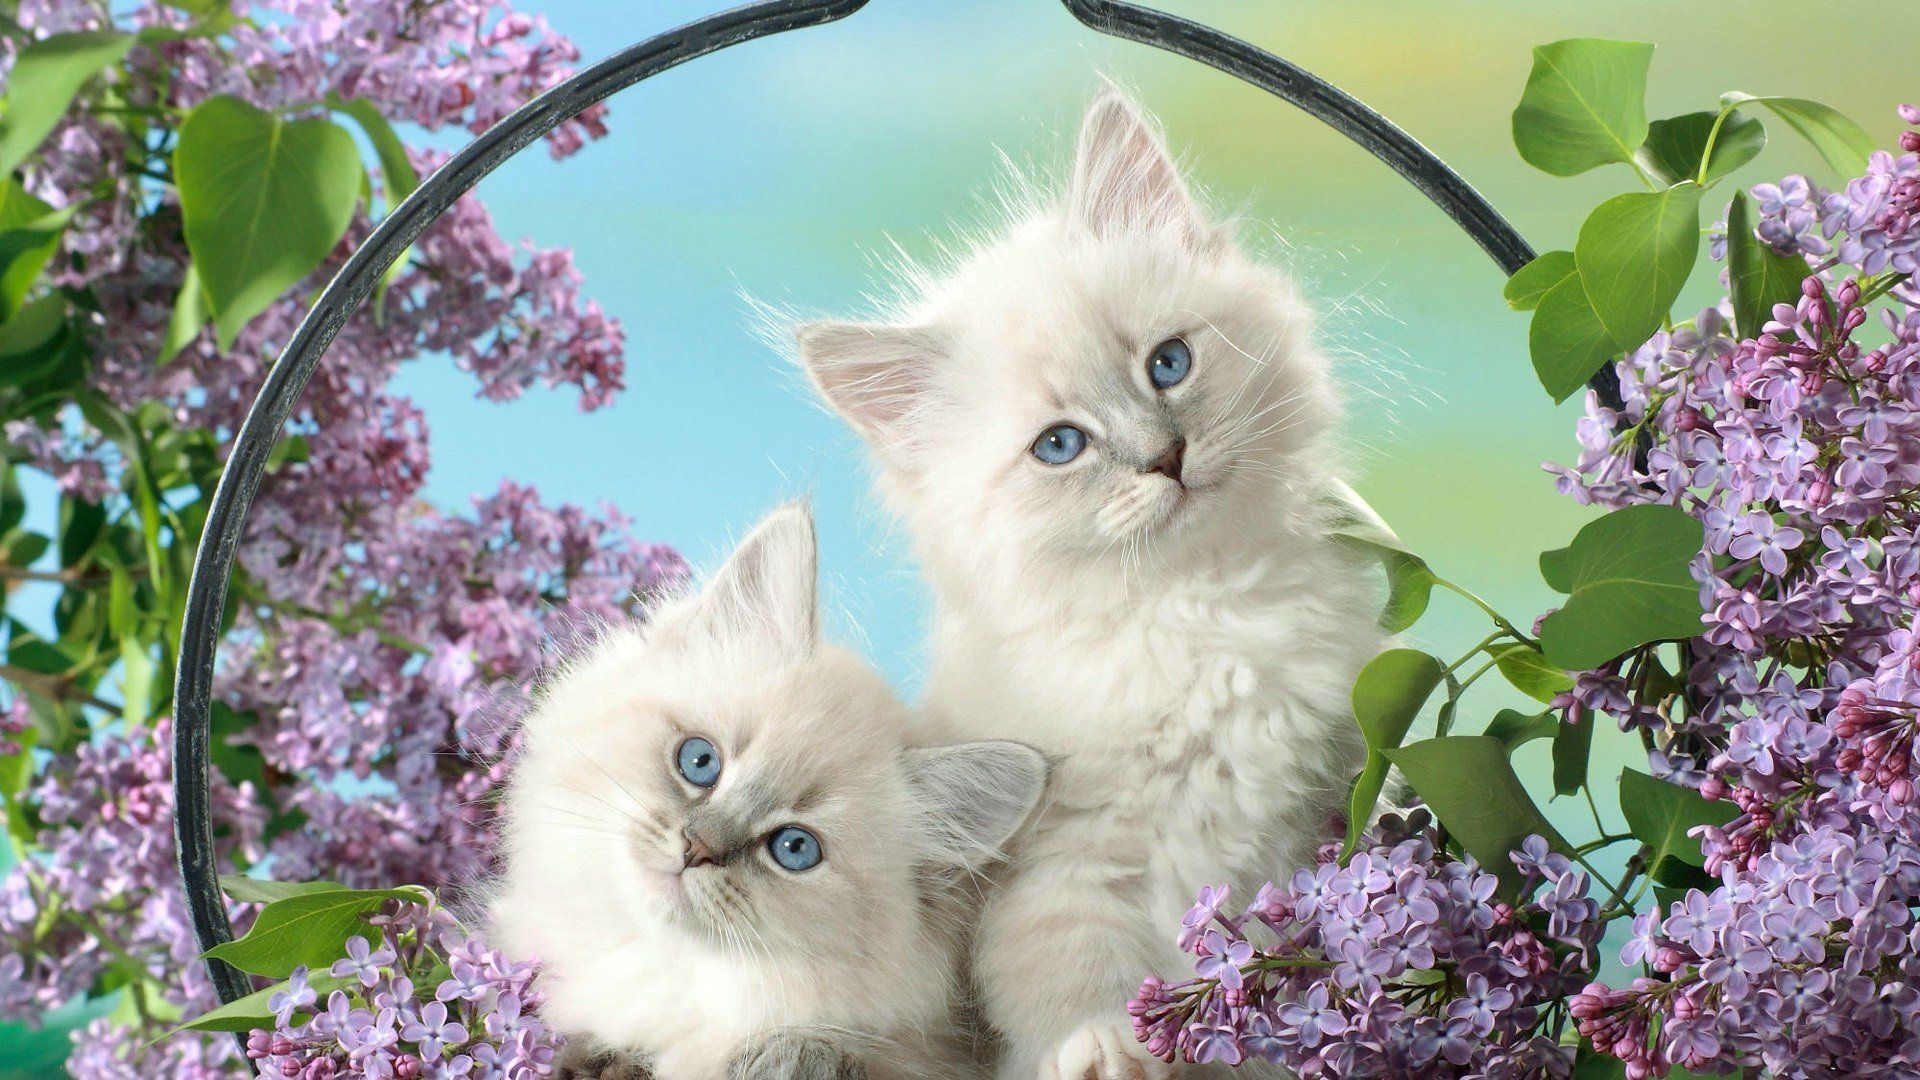 Beautiful Pictures On A Desktop Kittens